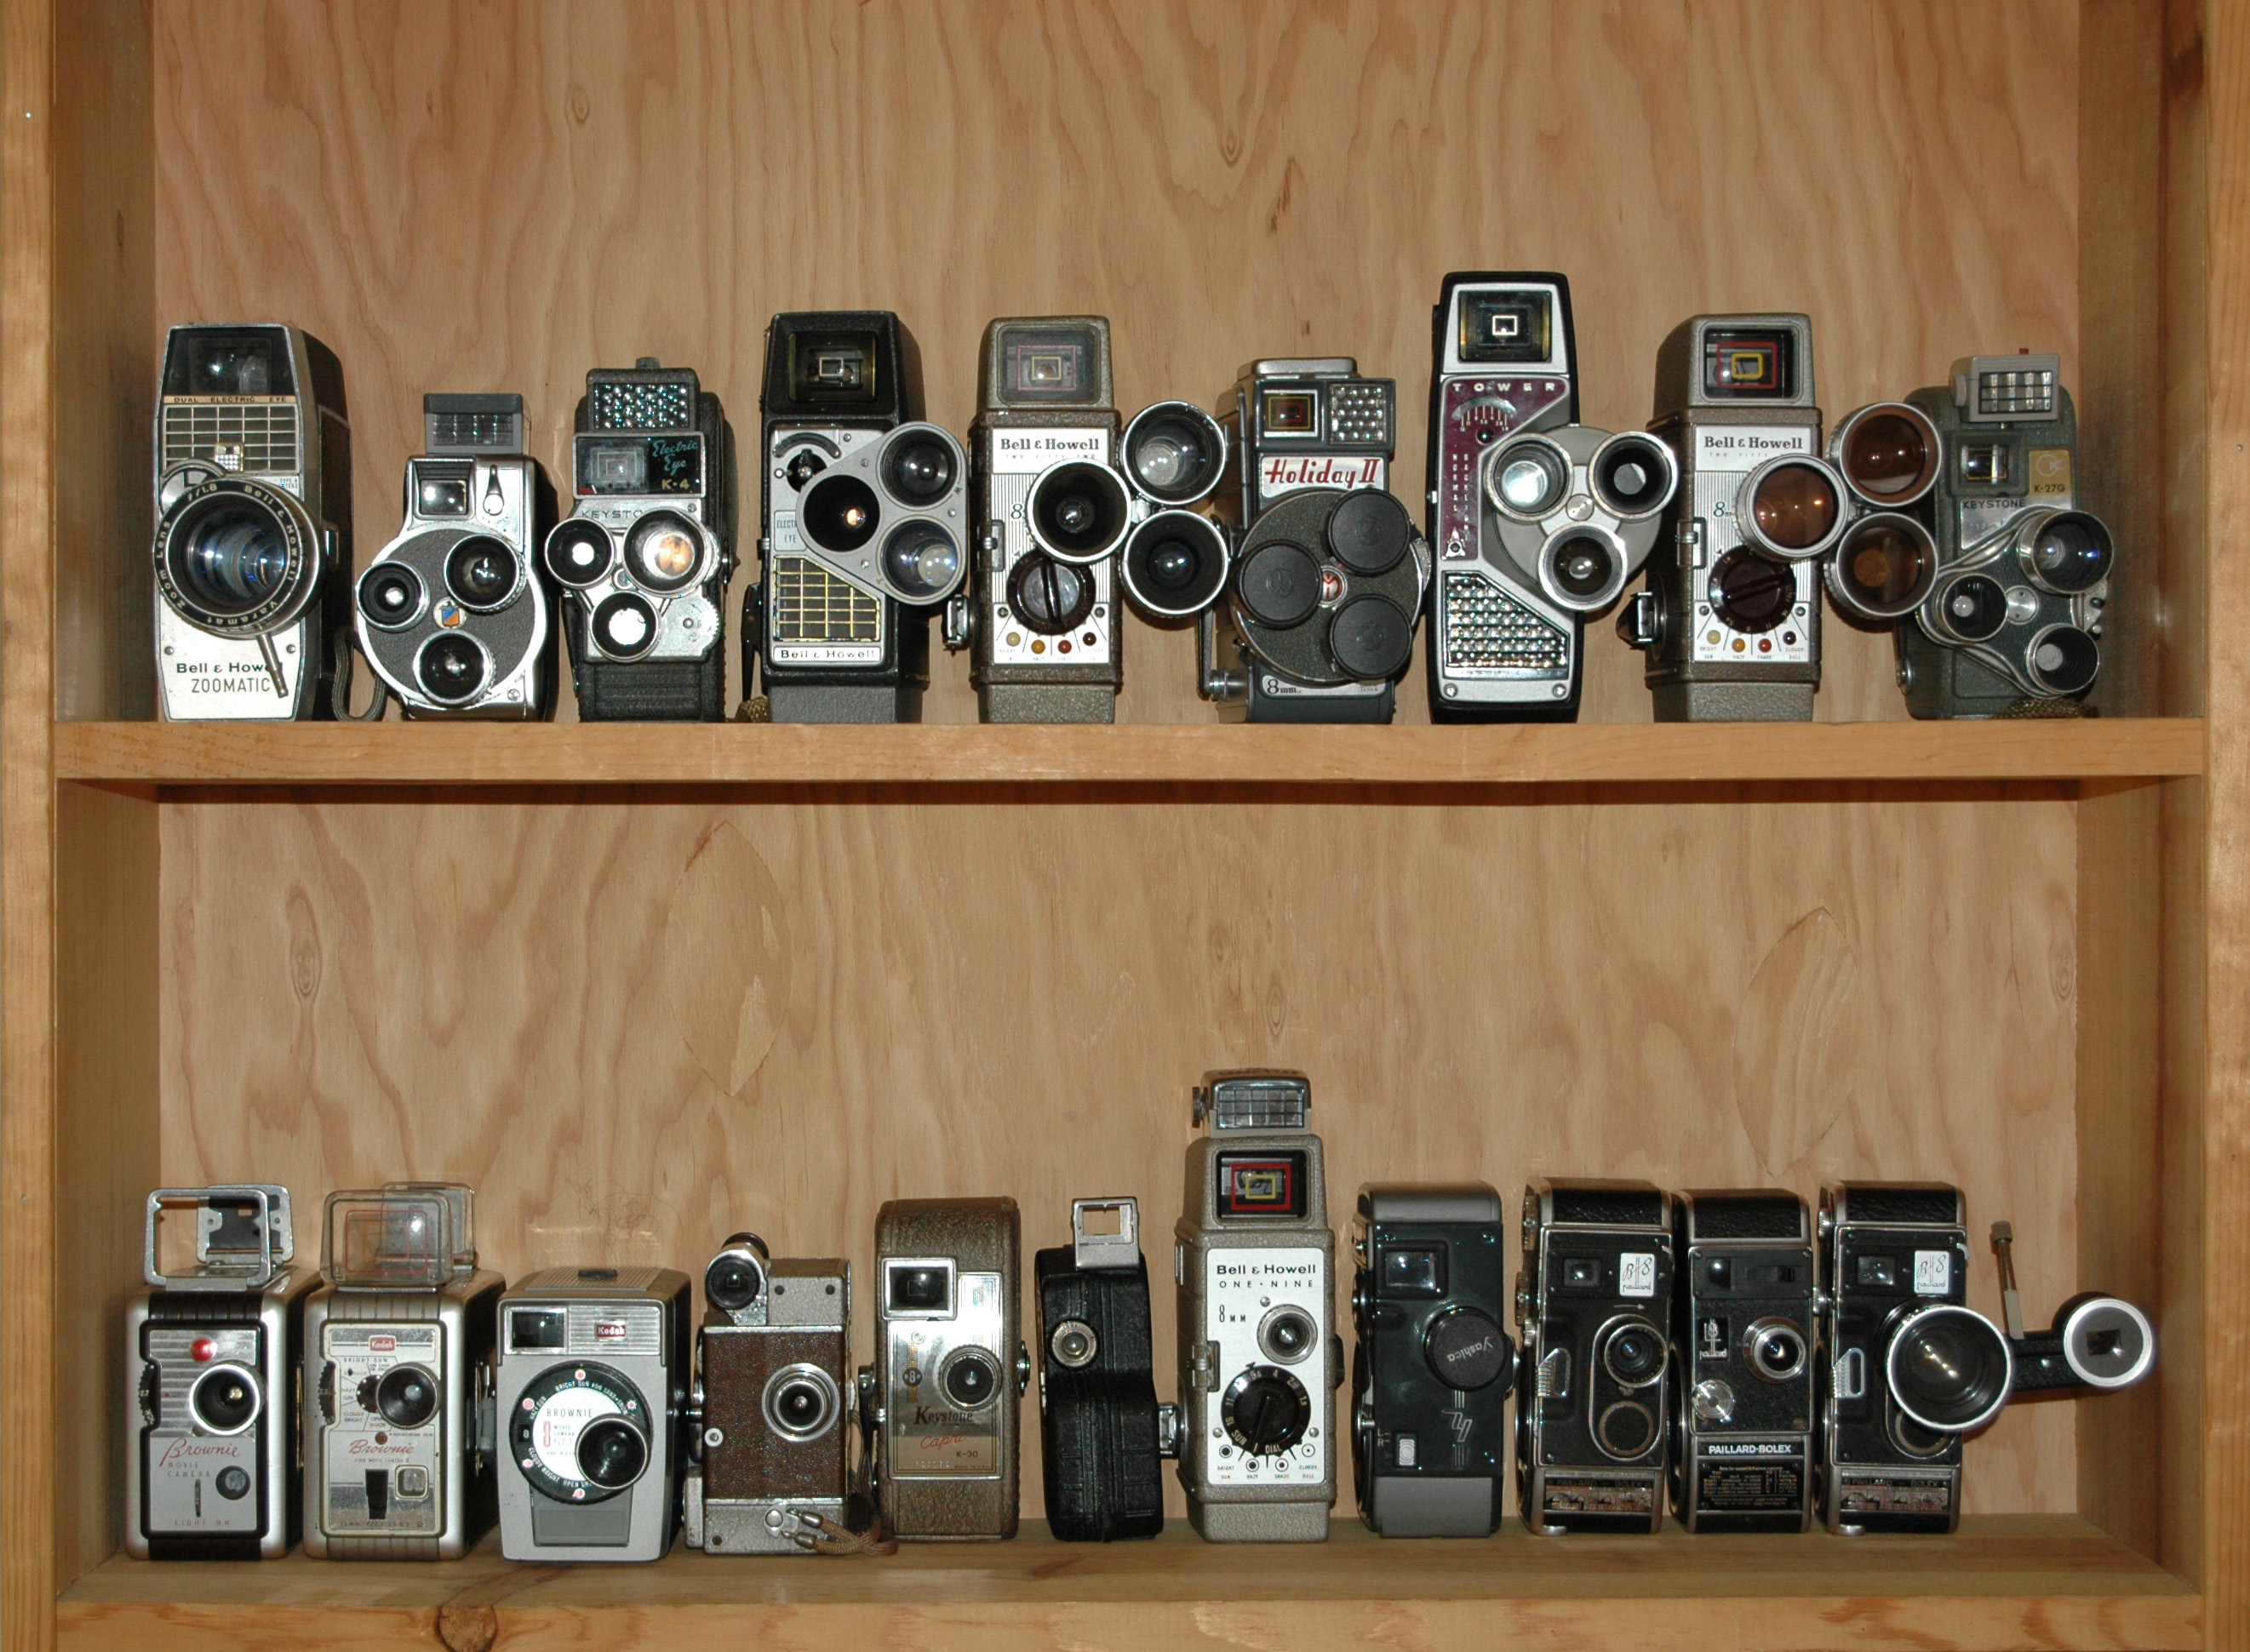 BJ's Movie Camera Collection